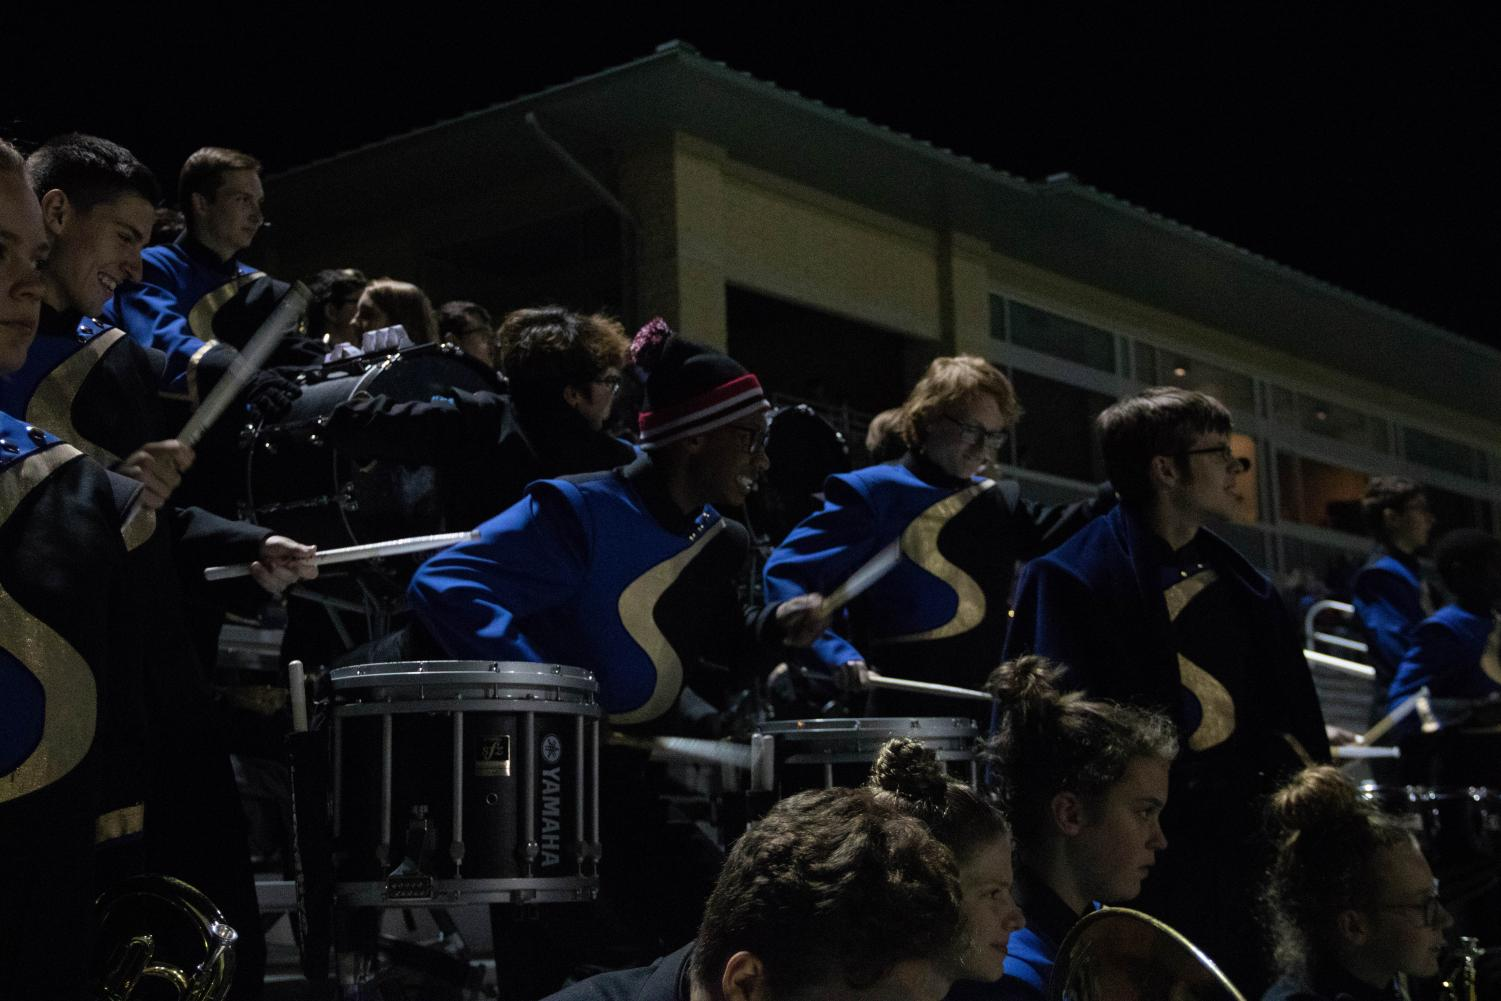 Band concludes 'Gifts of Joy' field show